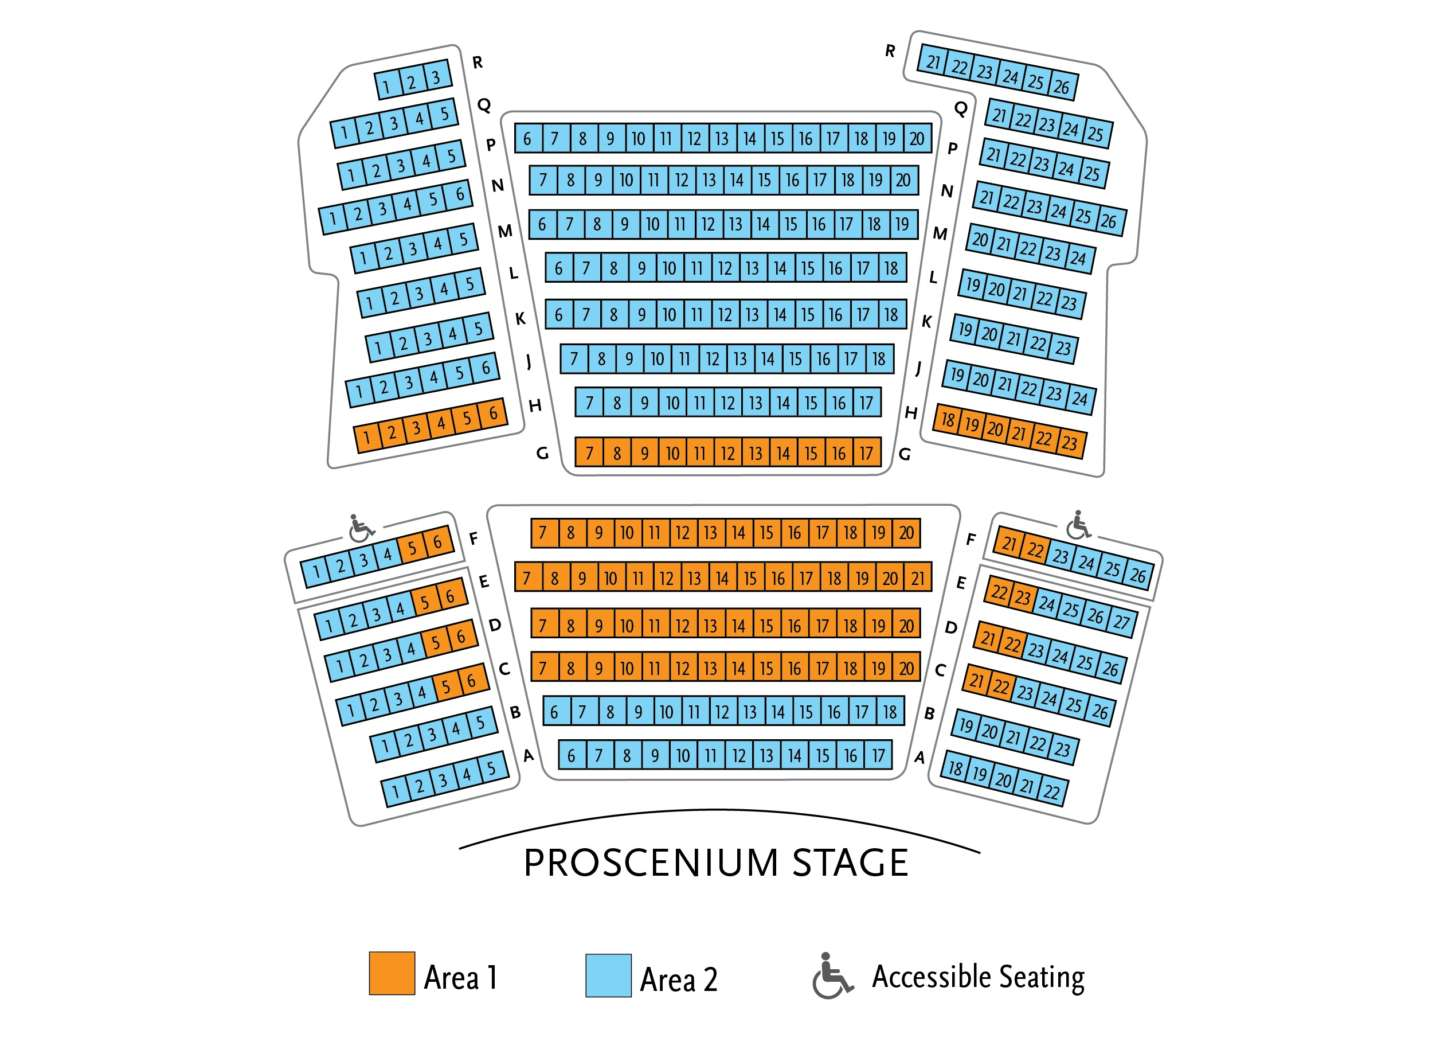 Graphic Seating Chart for Proscenium Stage - Please phone the ticket office at 651.291.7005 for assistance with accessibility and seat selection